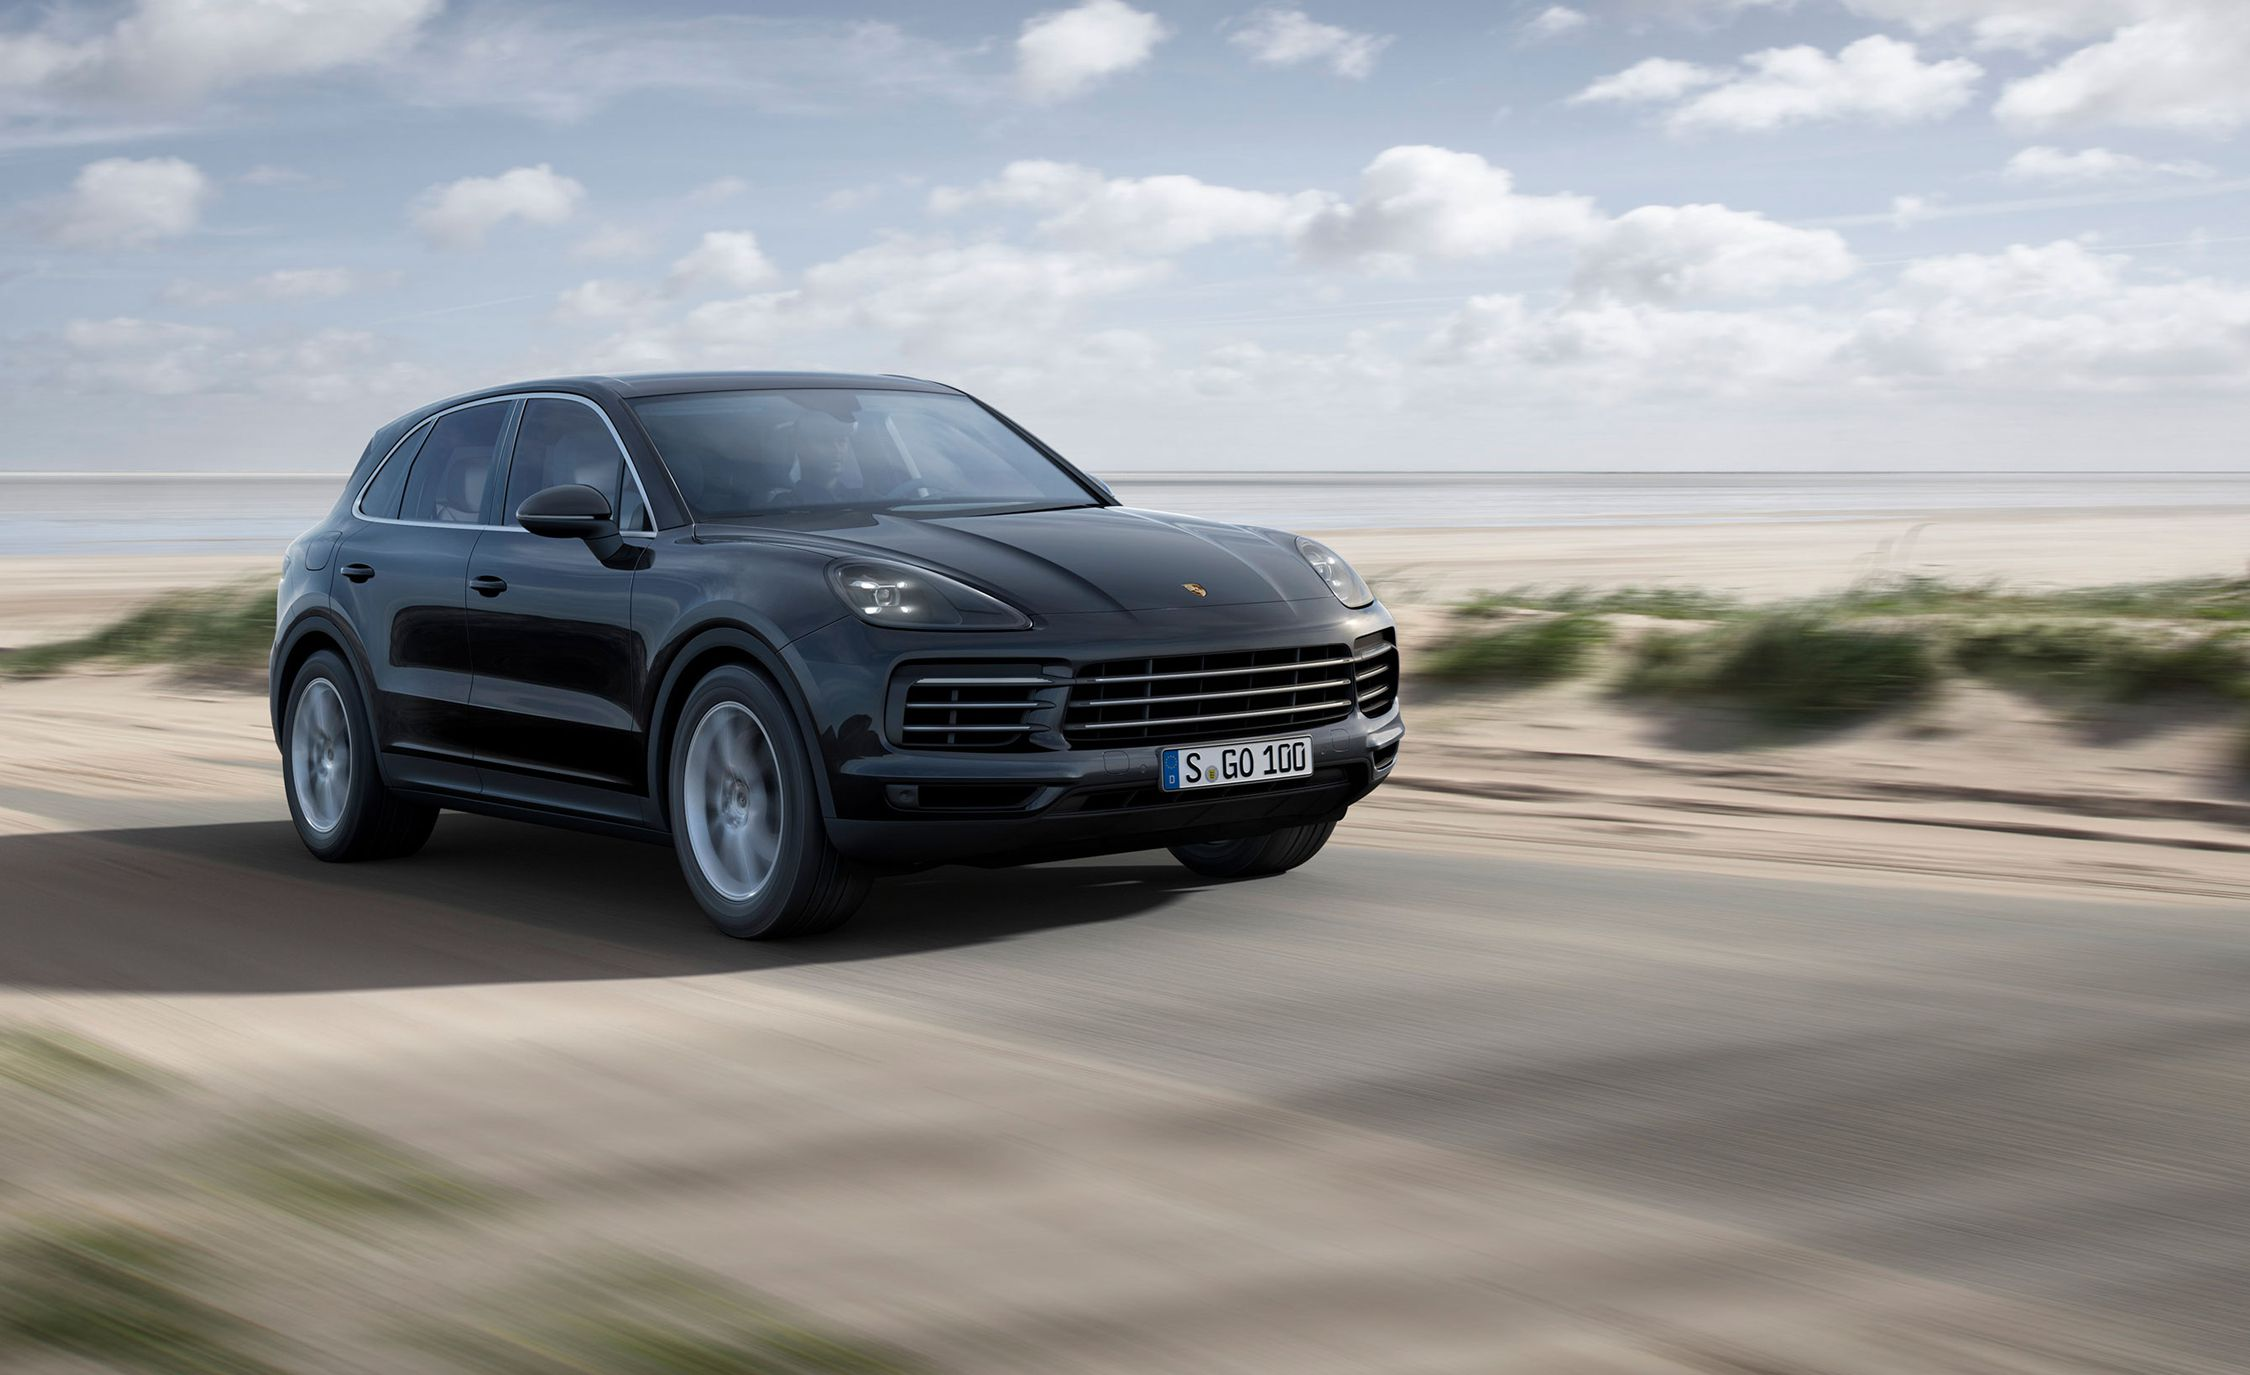 2019 Porsche Cayenne Prototype Drive | Review | Car and Driver